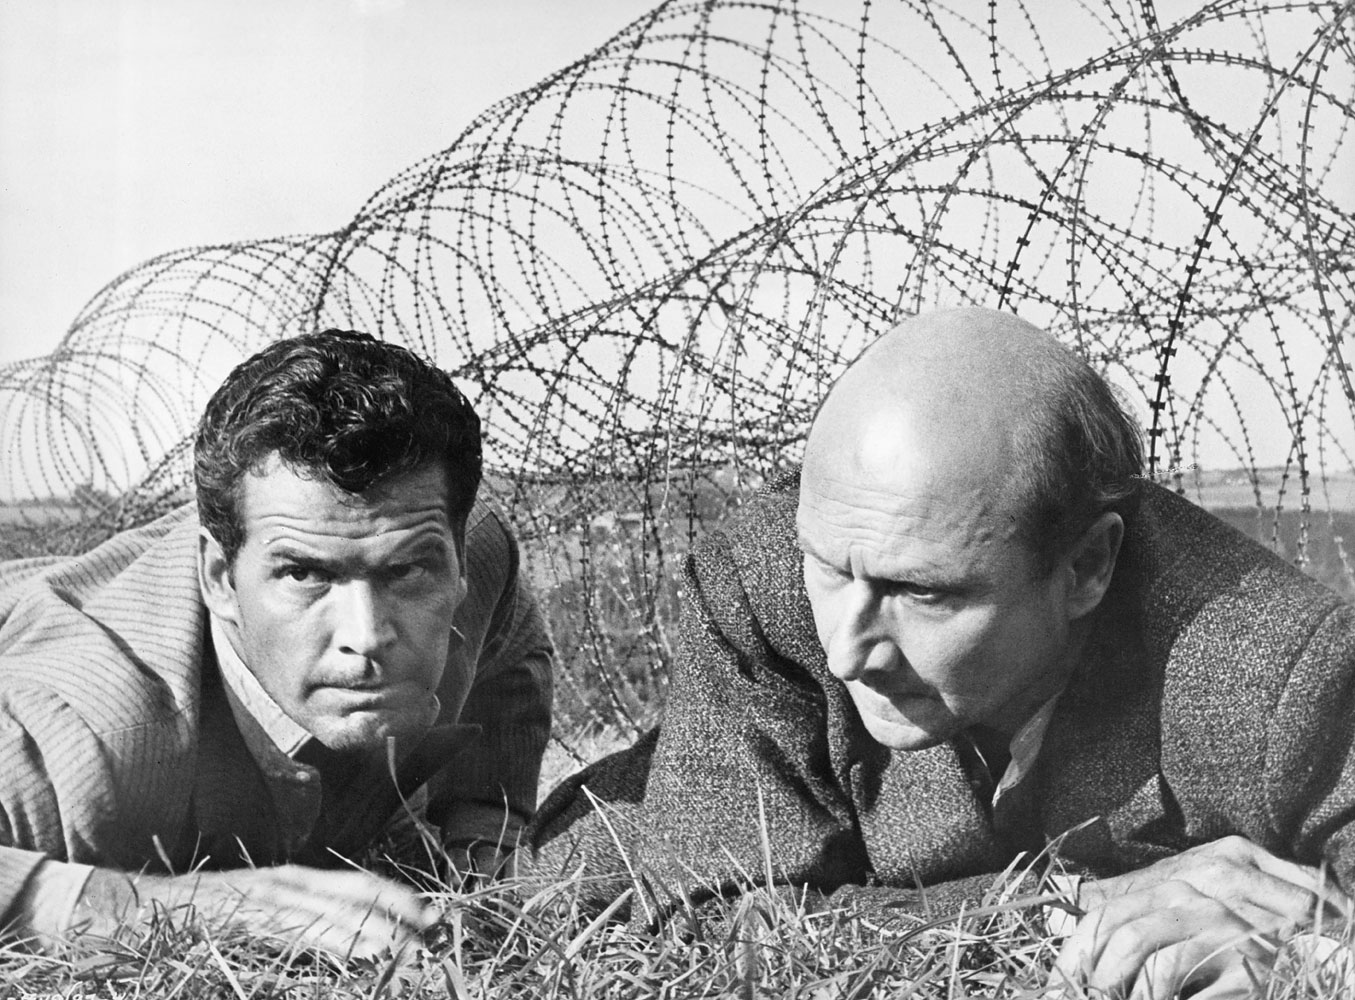 Donald Pleasance and Garner in a scene from The Great Escape, 1963.